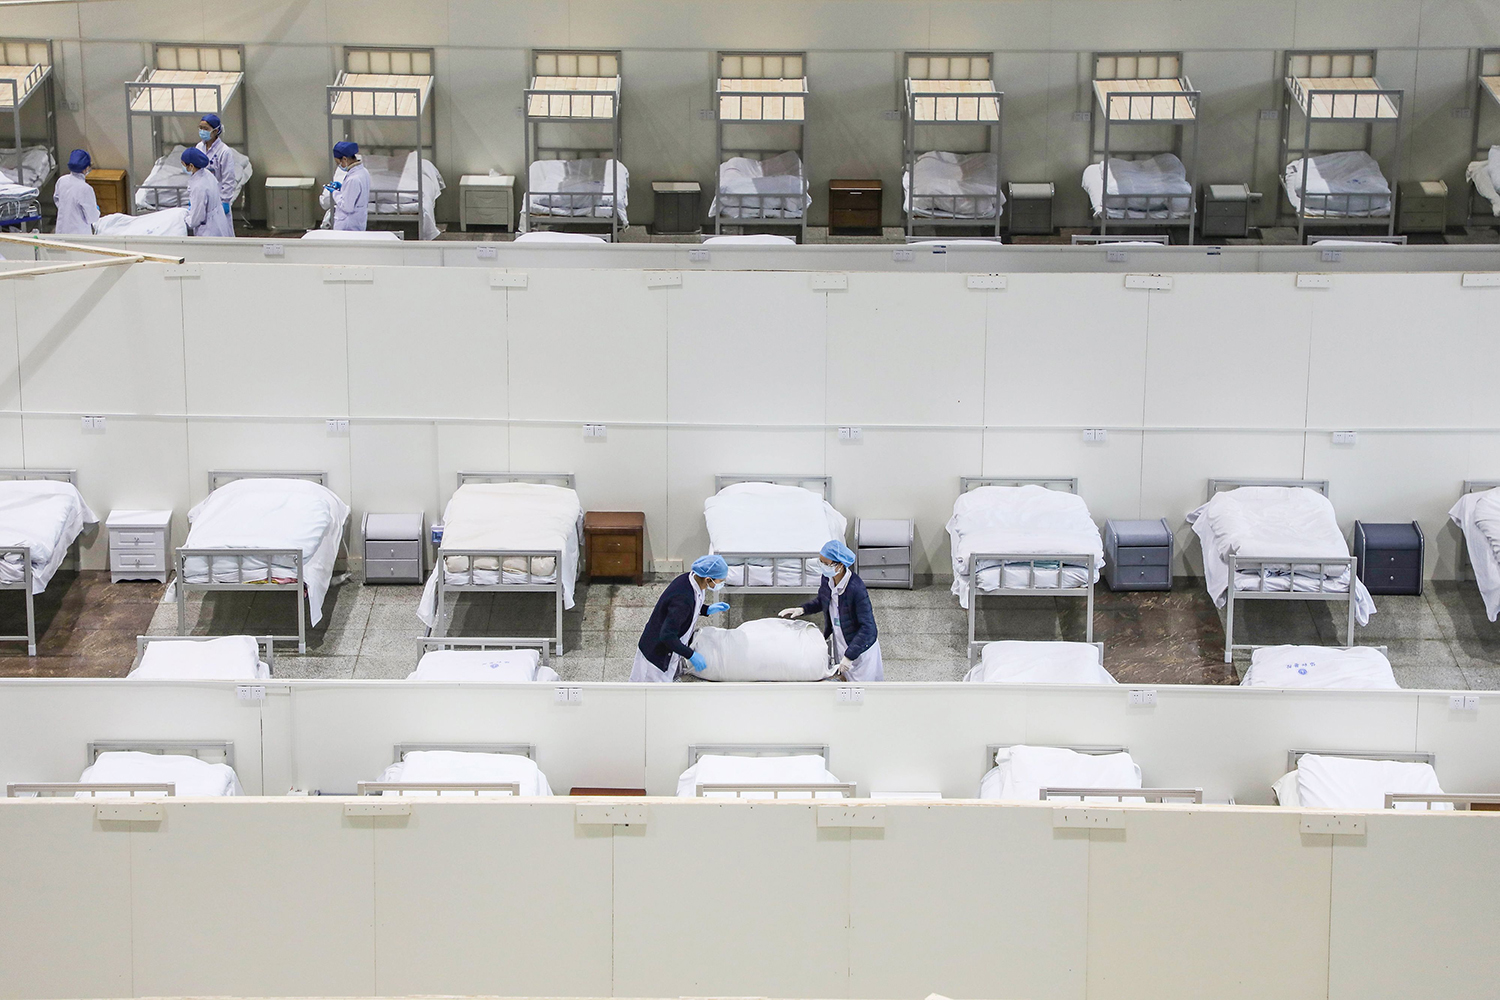 Medical staff members and workers set up beds as they prepare to accept patients displaying mild symptoms of novel coronavirus infection at an exhibition center converted into a hospital in Wuhan, China, on Feb. 5. STR/AFP via Getty Images